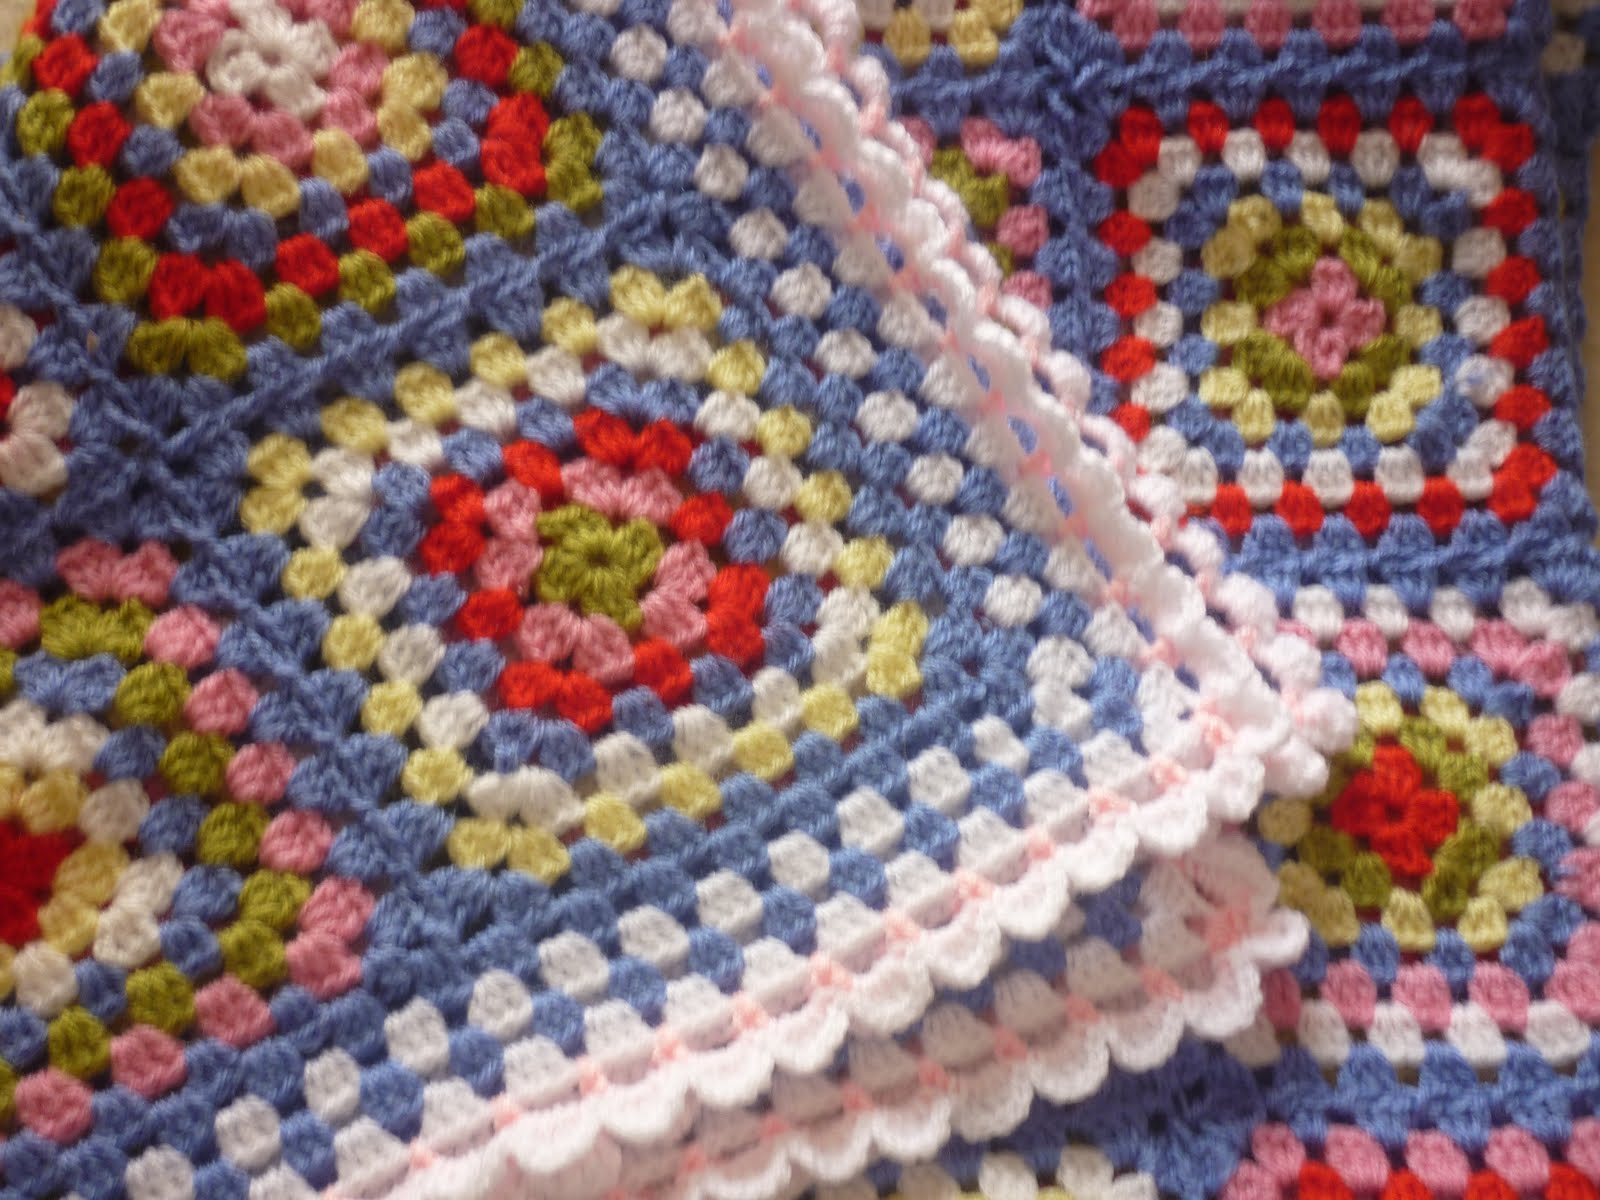 Helens Colourful Crochet Blankets: A blue crochet blanket In Cath ...